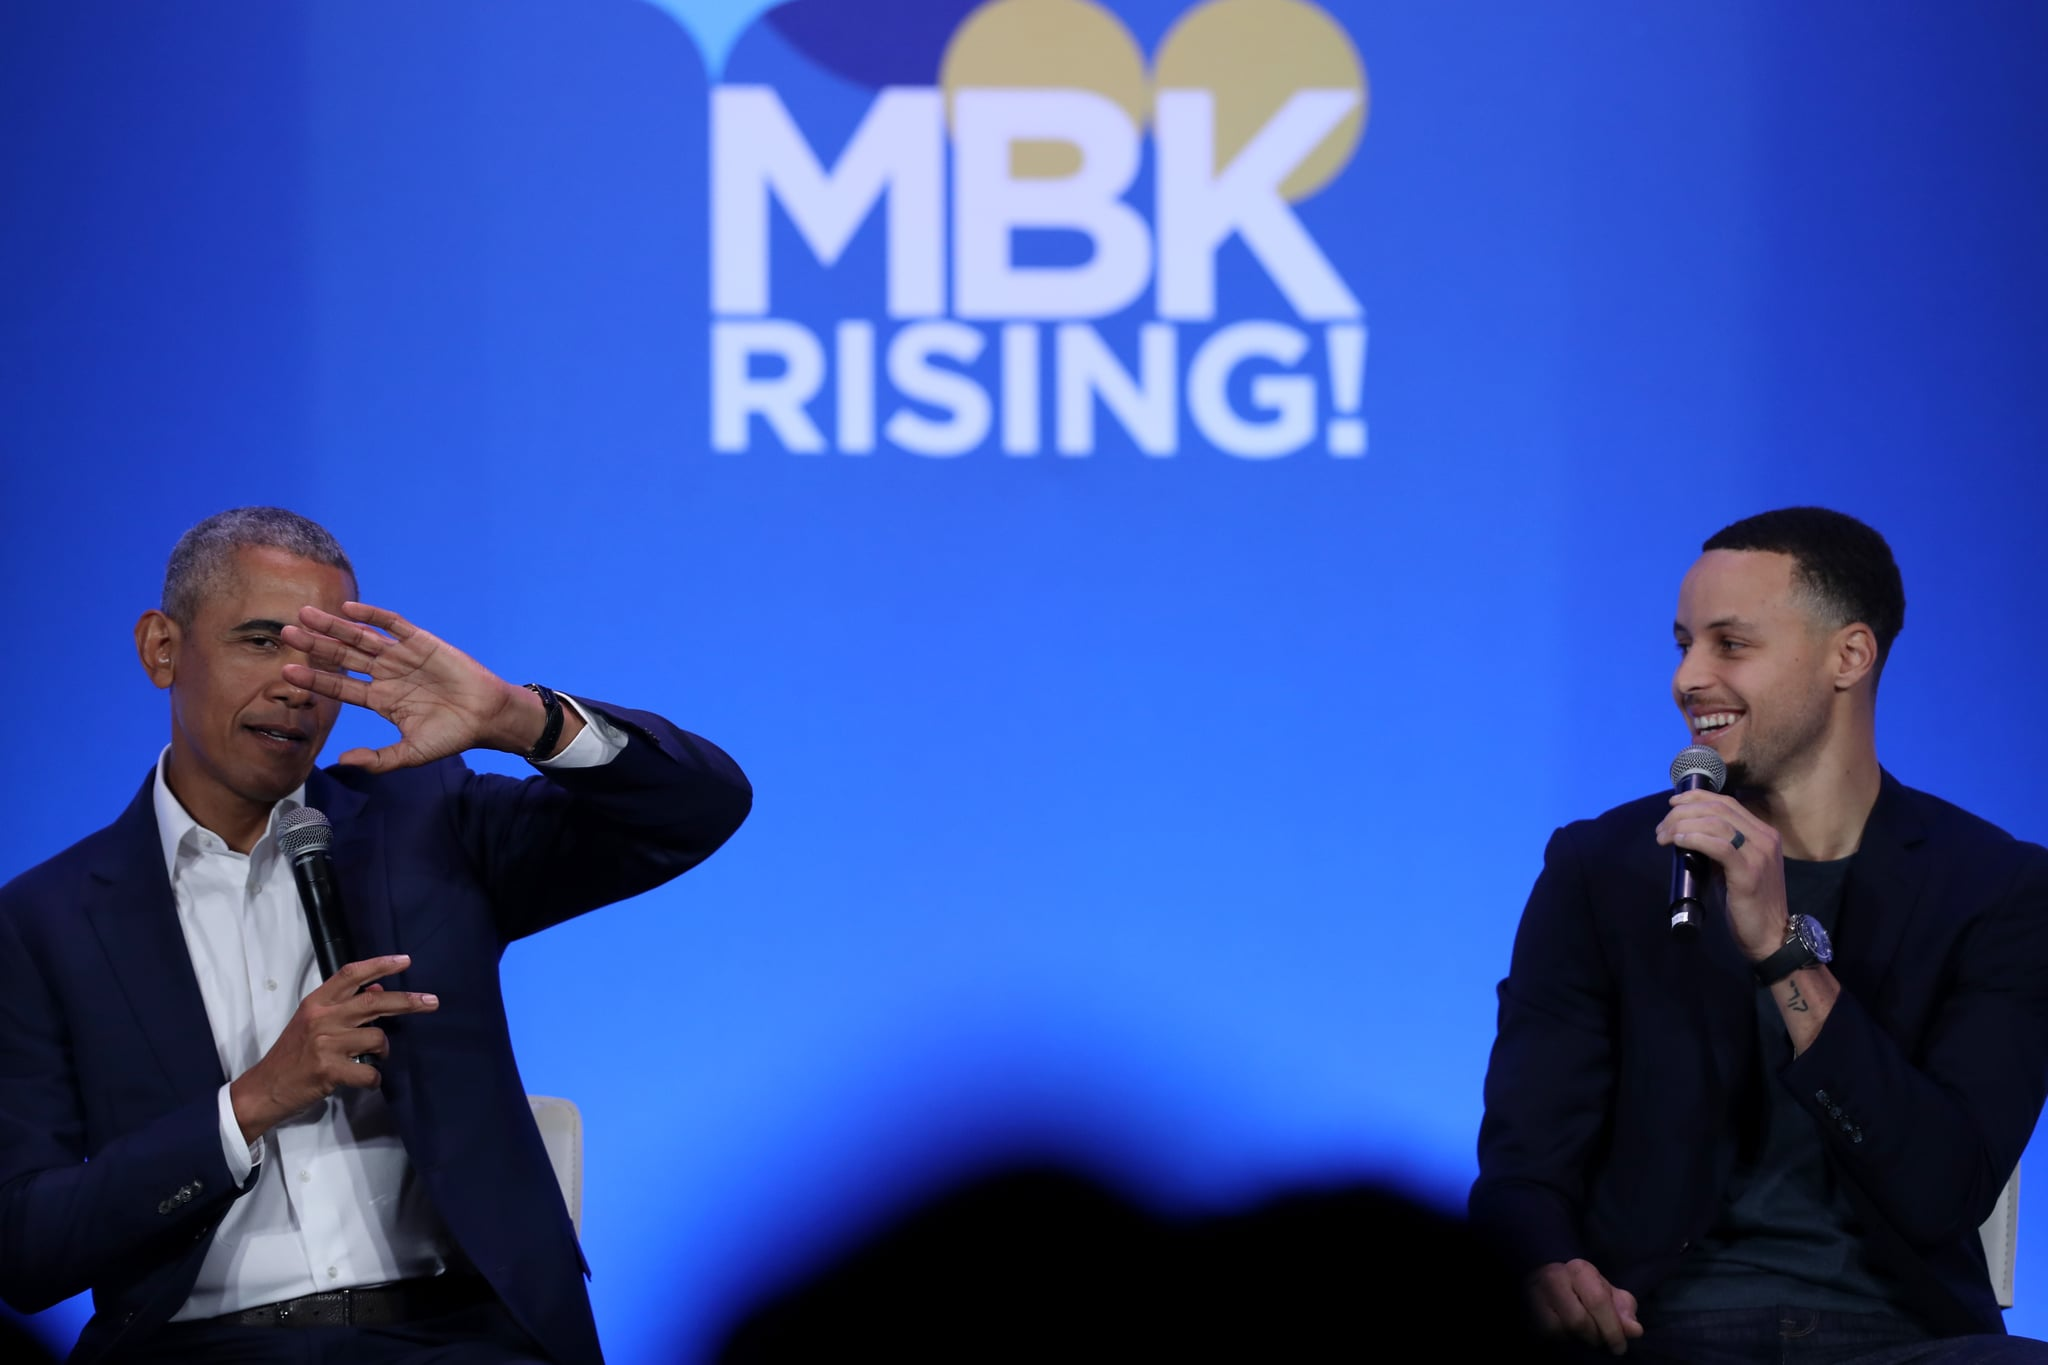 OAKLAND, CALIFORNIA - FEBRUARY 19: Former U.S. President Barack Obama (L) and Golden State Warriors player Stephen Curry speak in conversation during the MBK Rising! My Brother's Keeper Alliance Summit on February 19, 2019 in Oakland, California. MBK Rising! is bringing together hundreds of young men of color, local leaders and organizations that are working to reduce youth violence, create impactful mentorship programs, and improving life for young men of color. The My Brother's Keeper initiative was started by President Barack Obama following the death of Trayvon Martin. (Photo by Justin Sullivan/Getty Images)